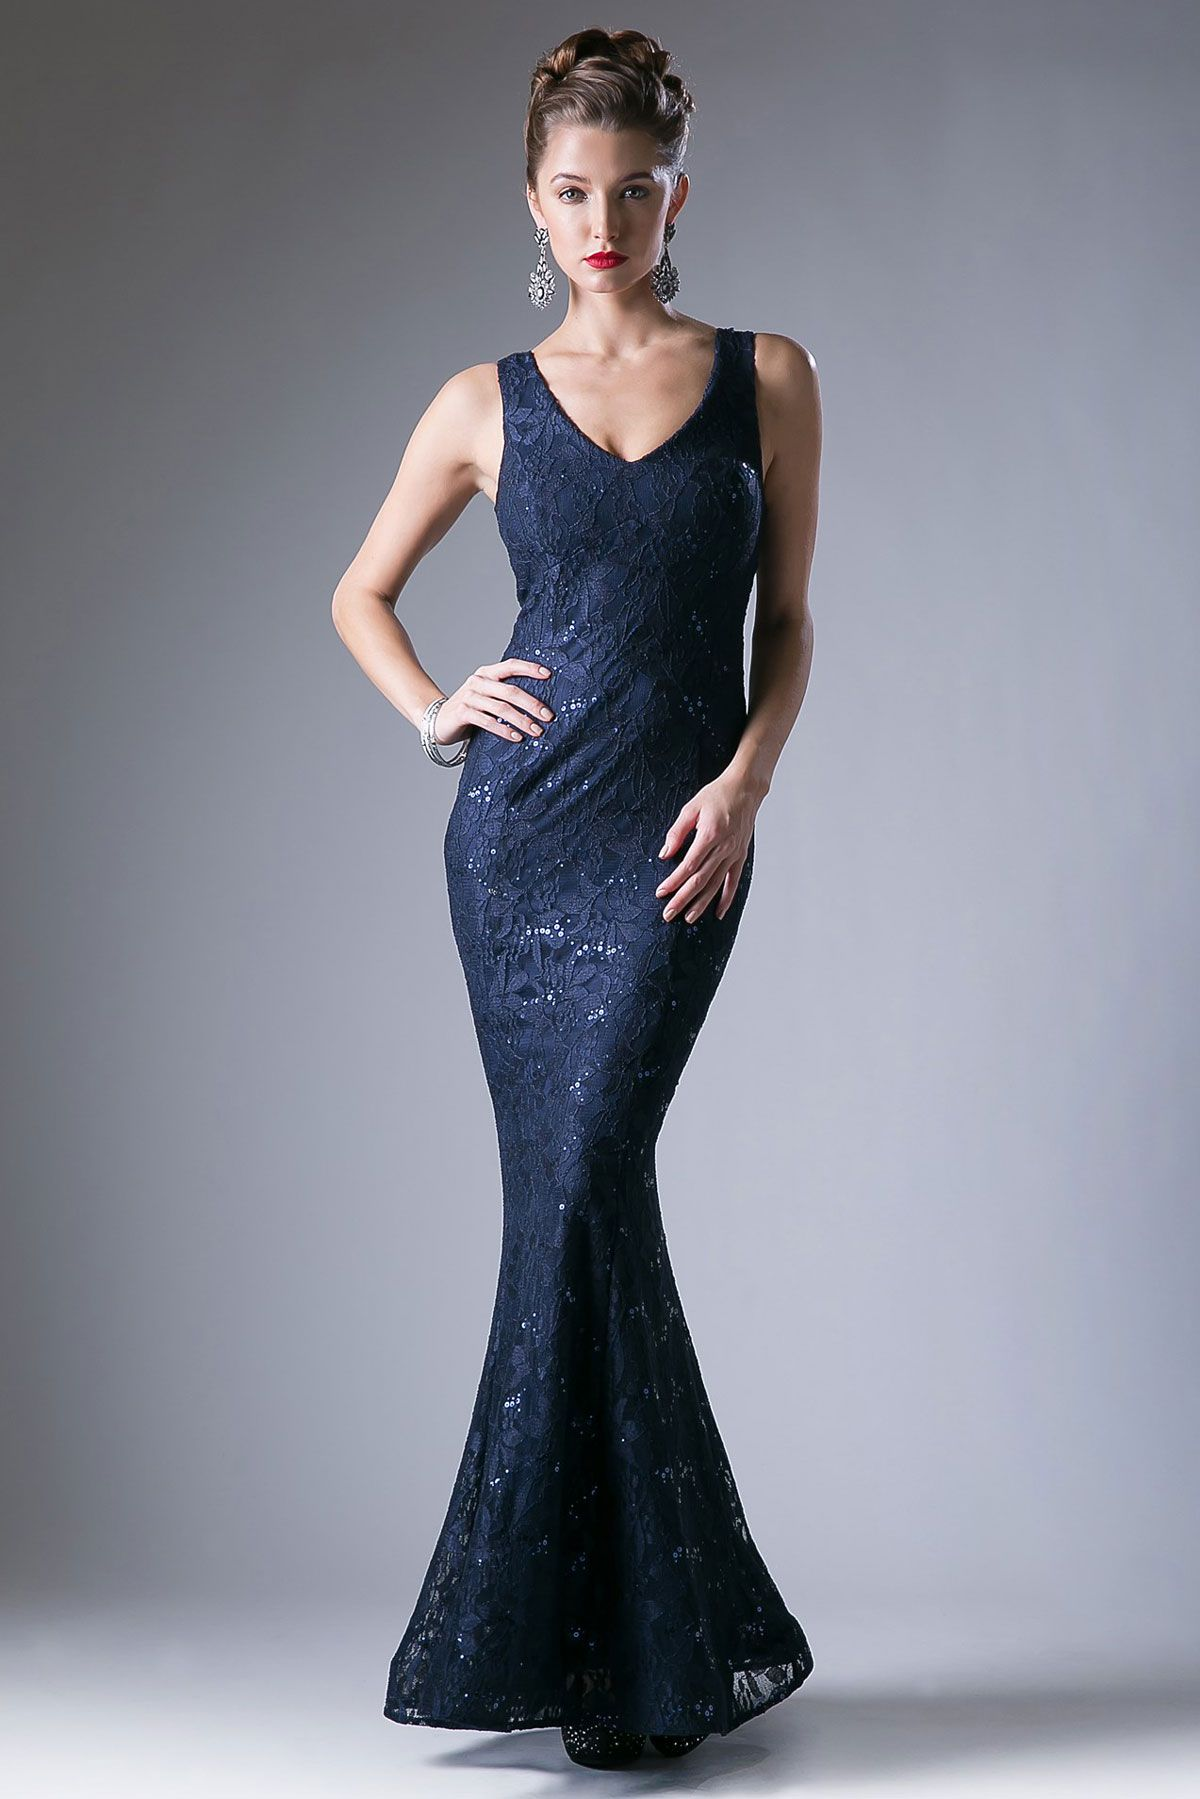 Elegant sheath shape lace evening dress with sequin accent has